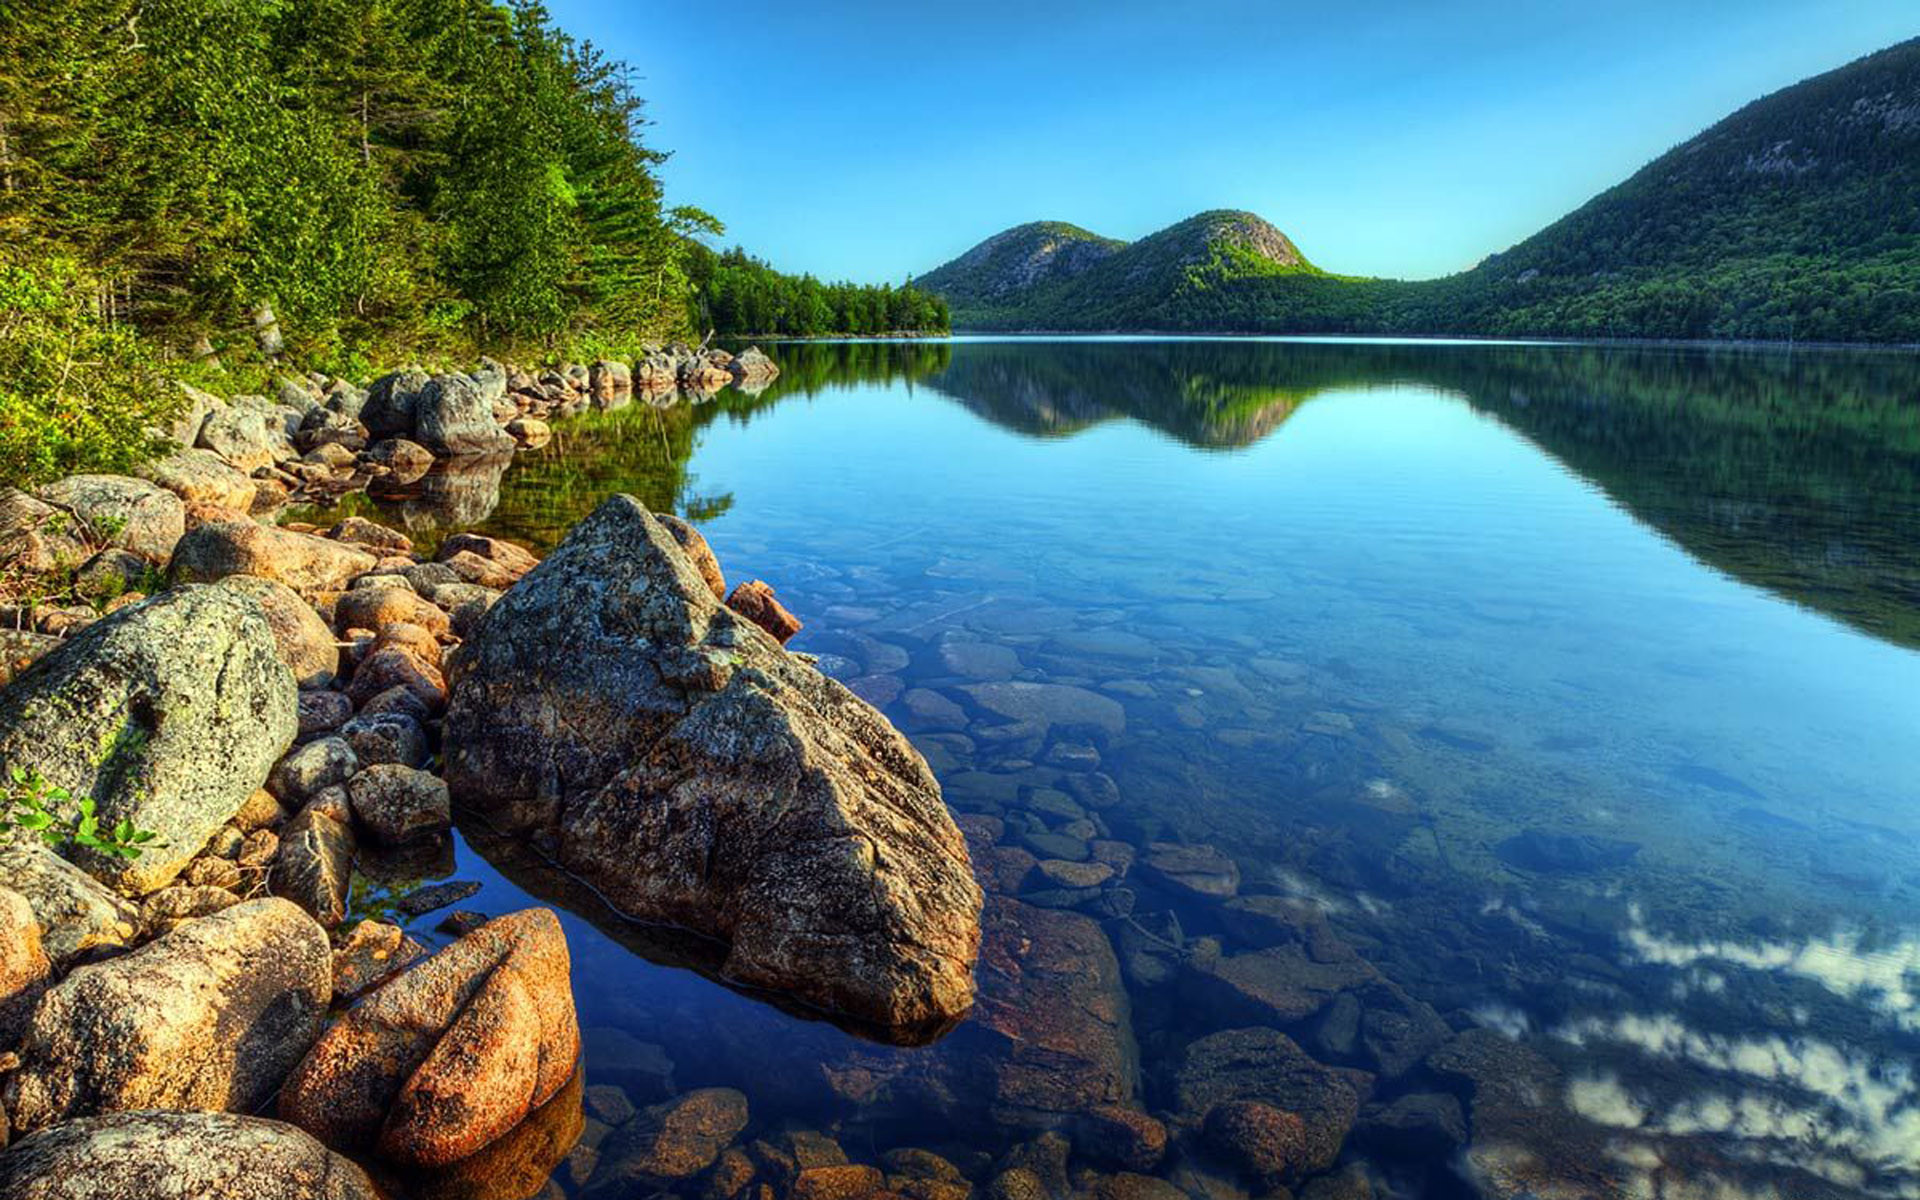 1920x1200 Acadia National Park Maine Jordan Pond Wallpaper Hd 1920×1200